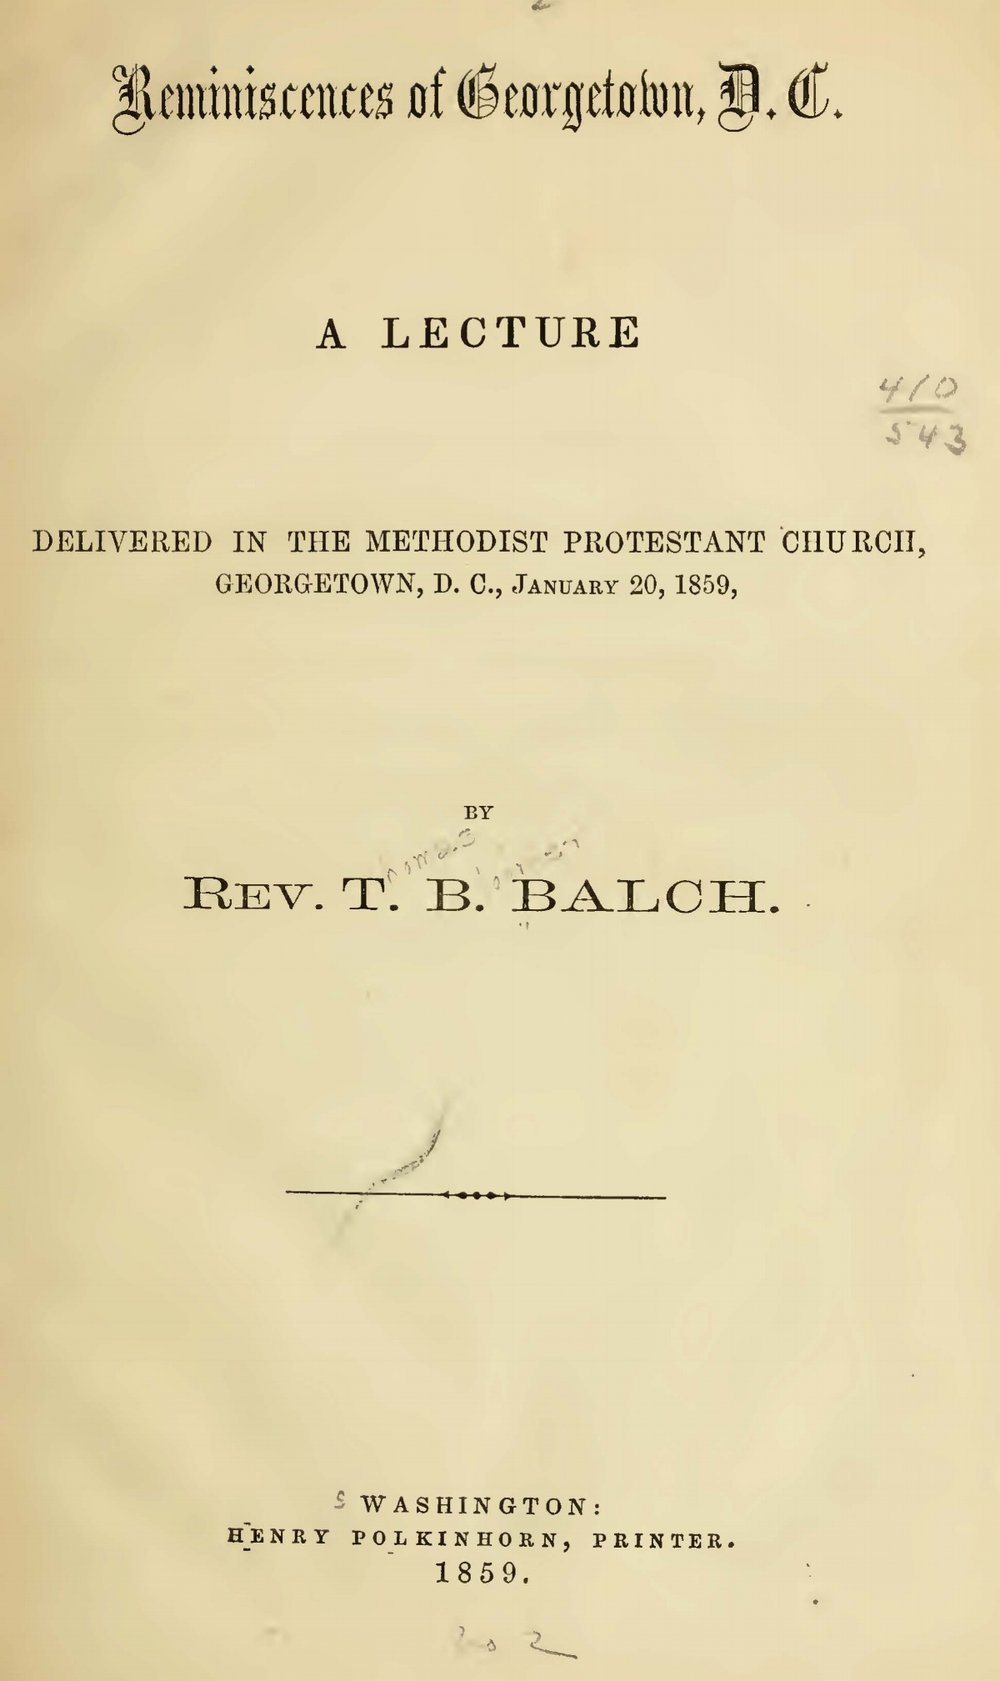 Balch, Thomas Bloomer, Reminiscences of Georgetown, D.C. Title Page.jpg